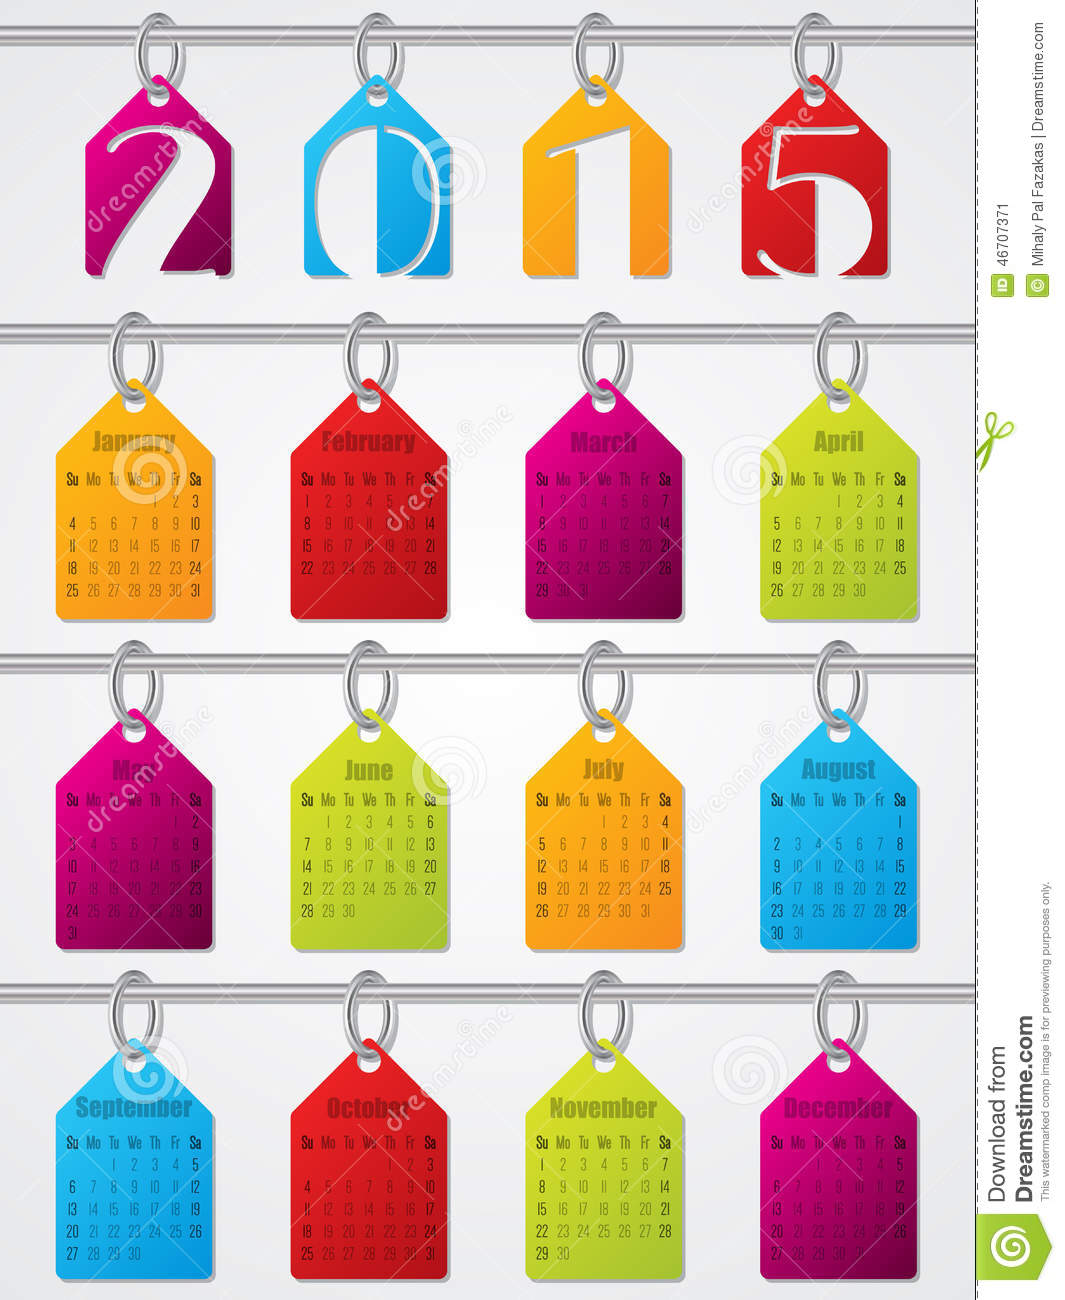 Hanging Calendar Design : Hanging labels calendar design stock vector image